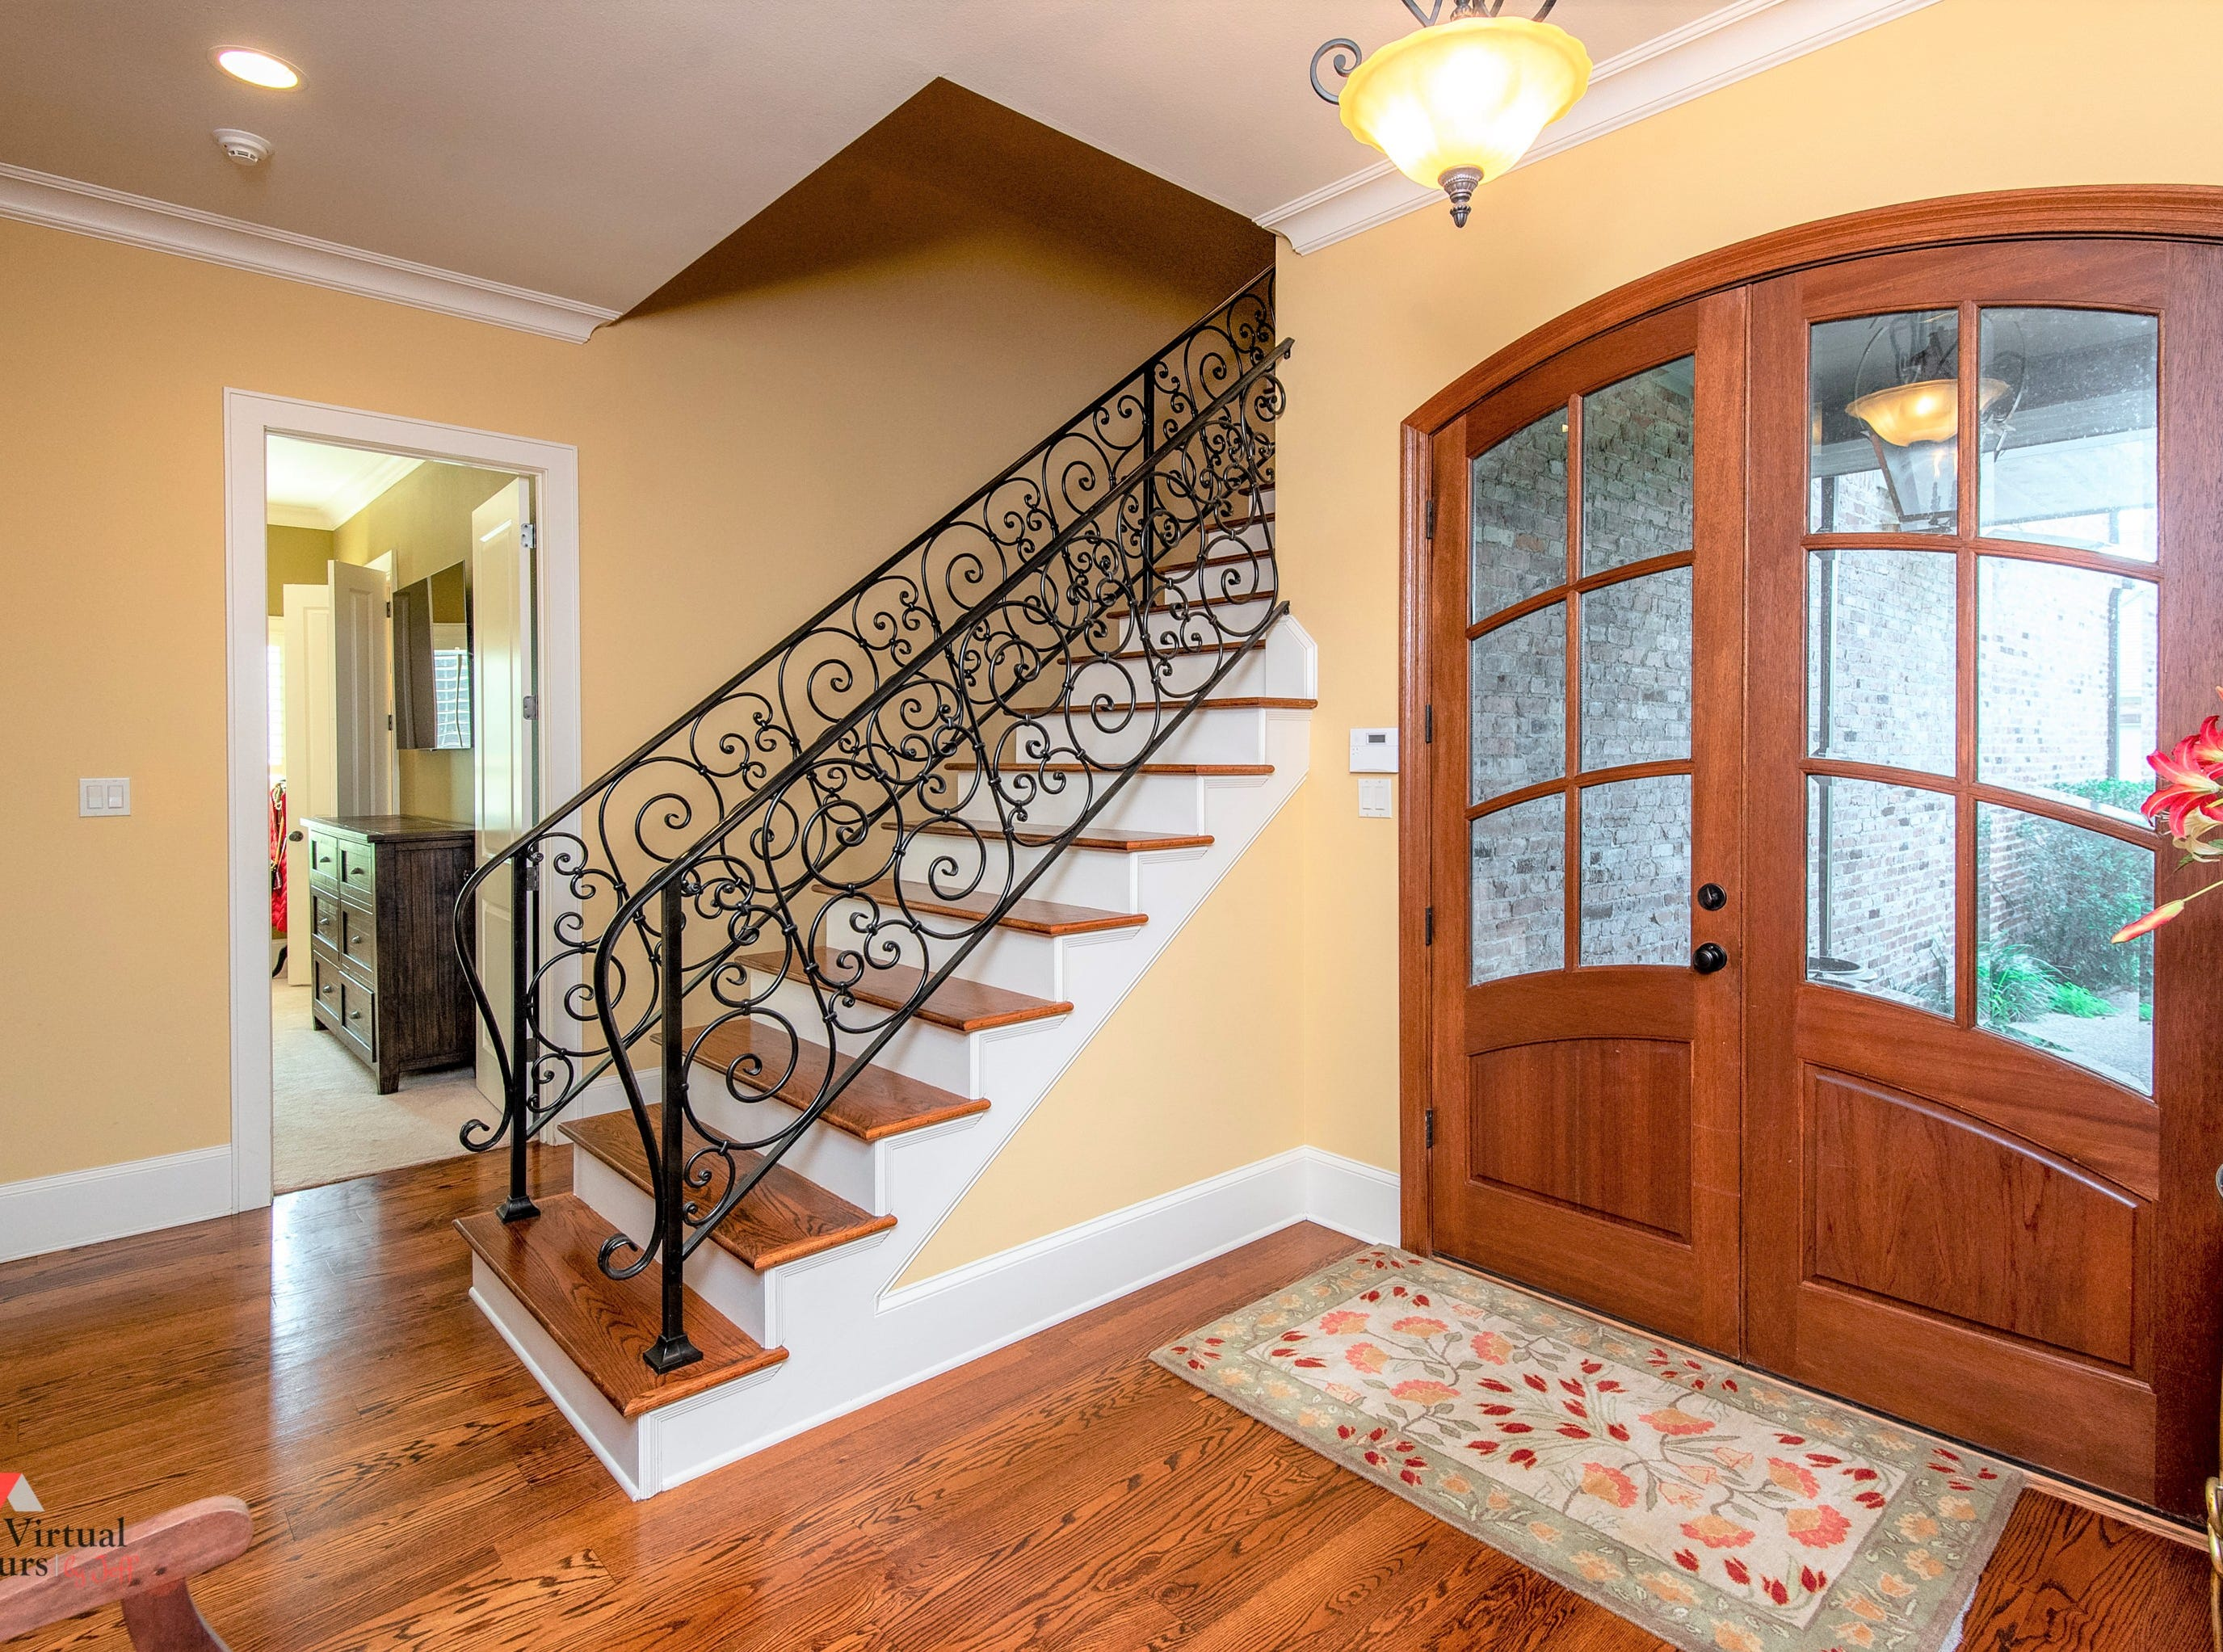 6121 Fern Avenue, #93, Shreveport  Price: $510,000  Details: 4 bedrooms, 3 bathrooms, 3,300 square feet  Special features: Located in gated Pierremont Place, open floor plan, gourmet kitchen,  swimming pool. Open house Sunday, 2-4.  Contact: Sarah Lowder, 453-9141